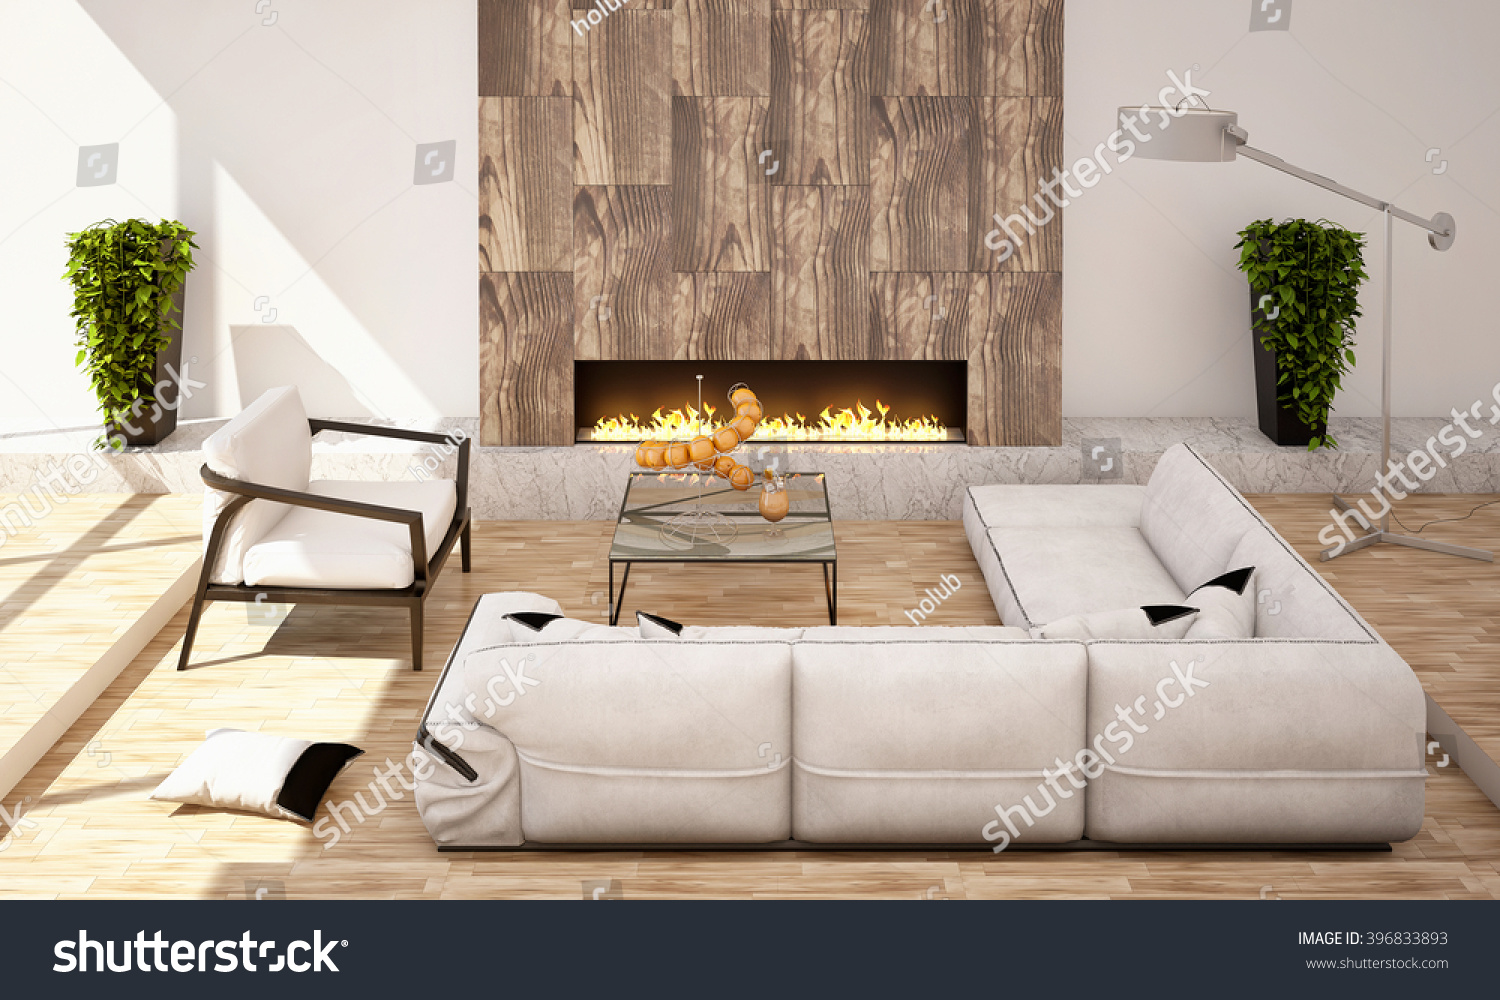 Big Couch Living Room Fireplace Big Sofa Armchair Stock Illustration